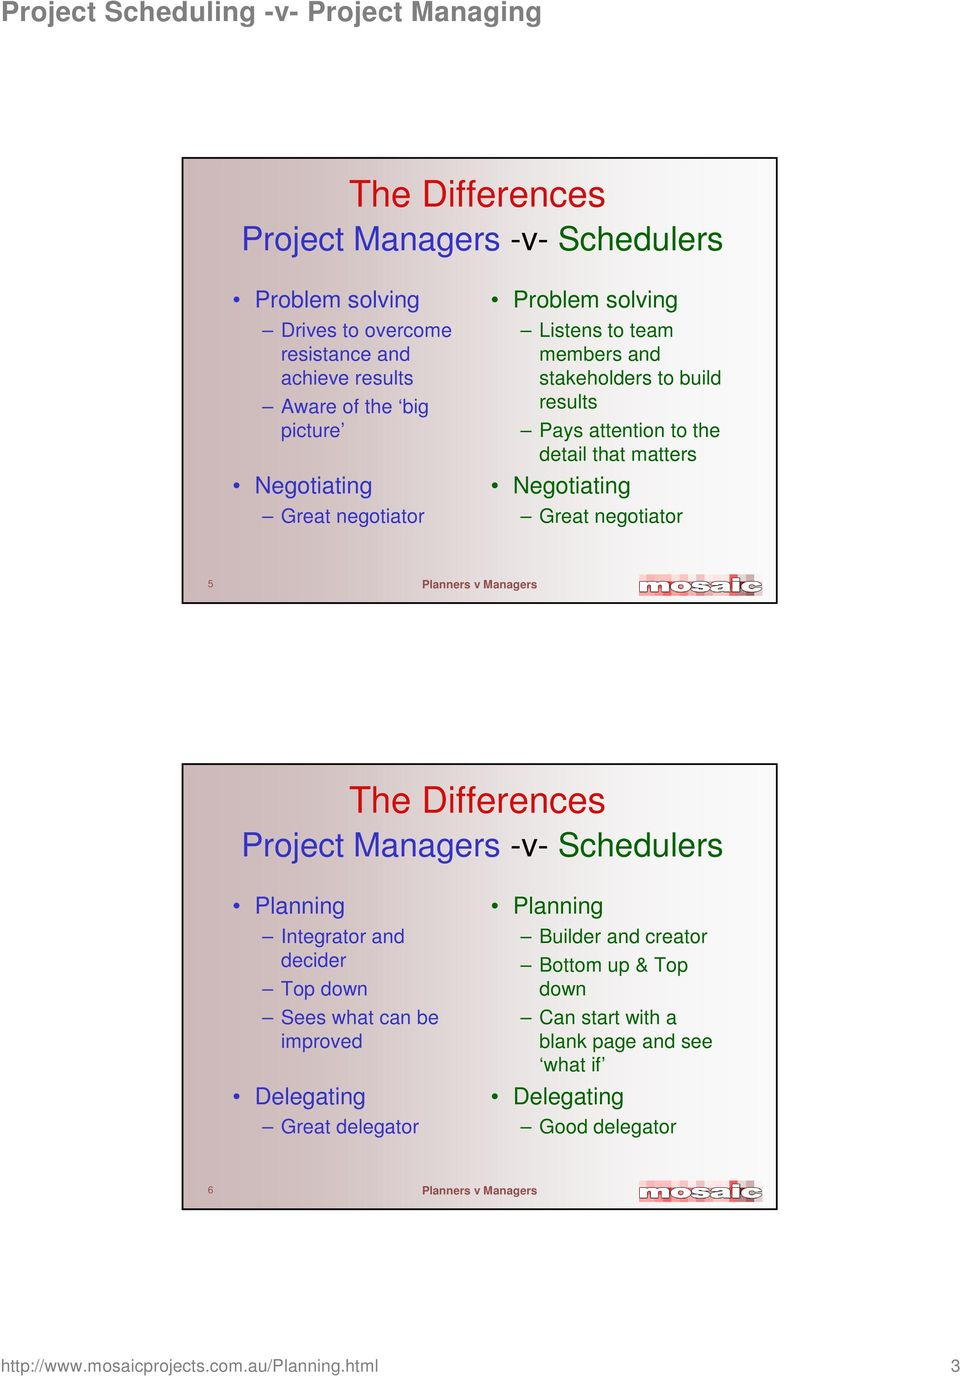 5 The Differences Project Managers -v- Schedulers Planning Integrator and decider Top down Sees what can be improved Delegating Great delegator Planning